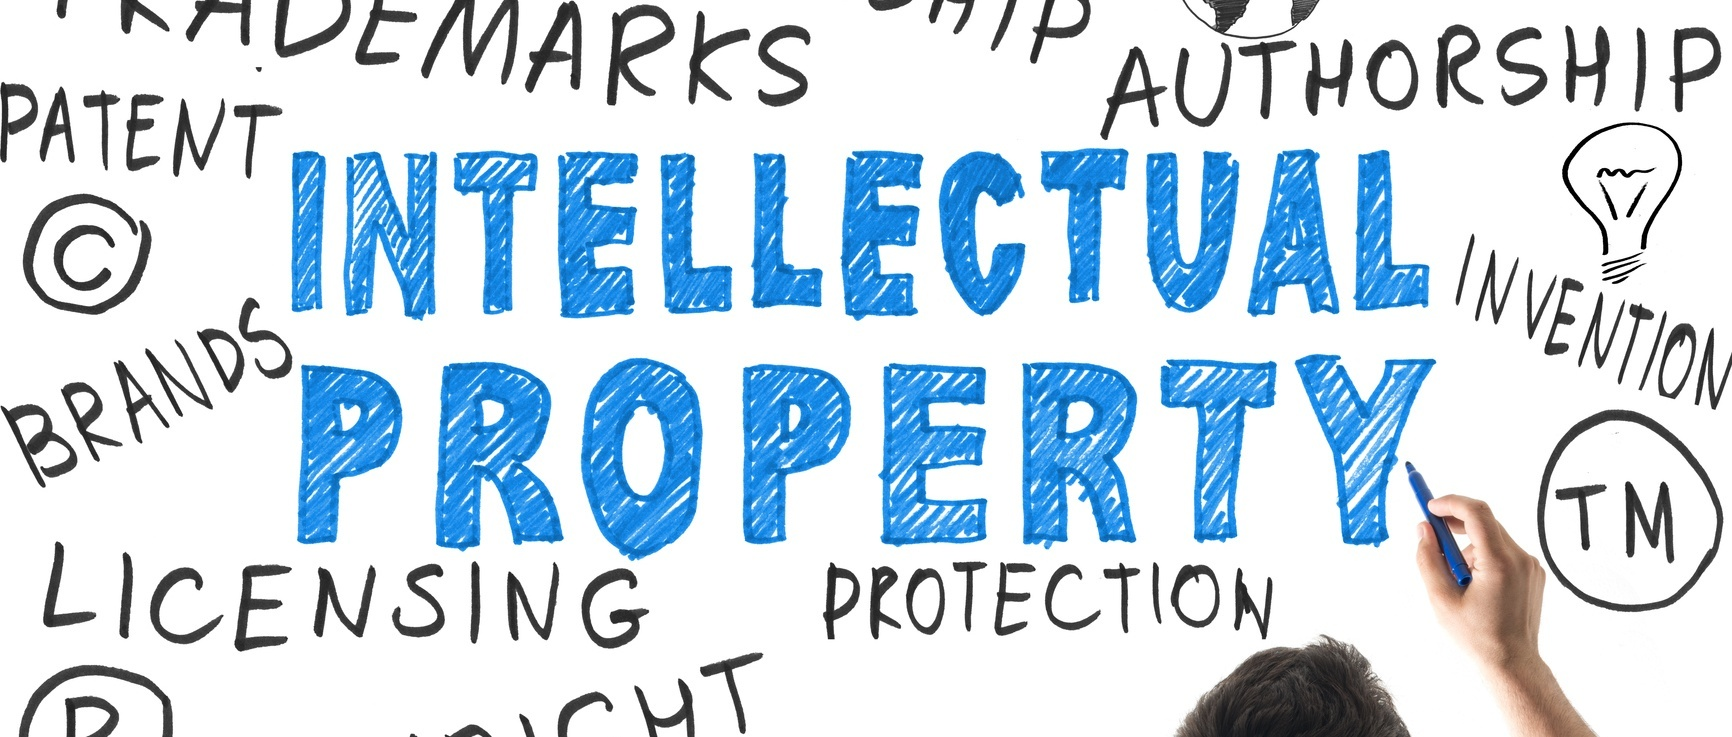 intellectual-property-protection-methods Cropped.jpg